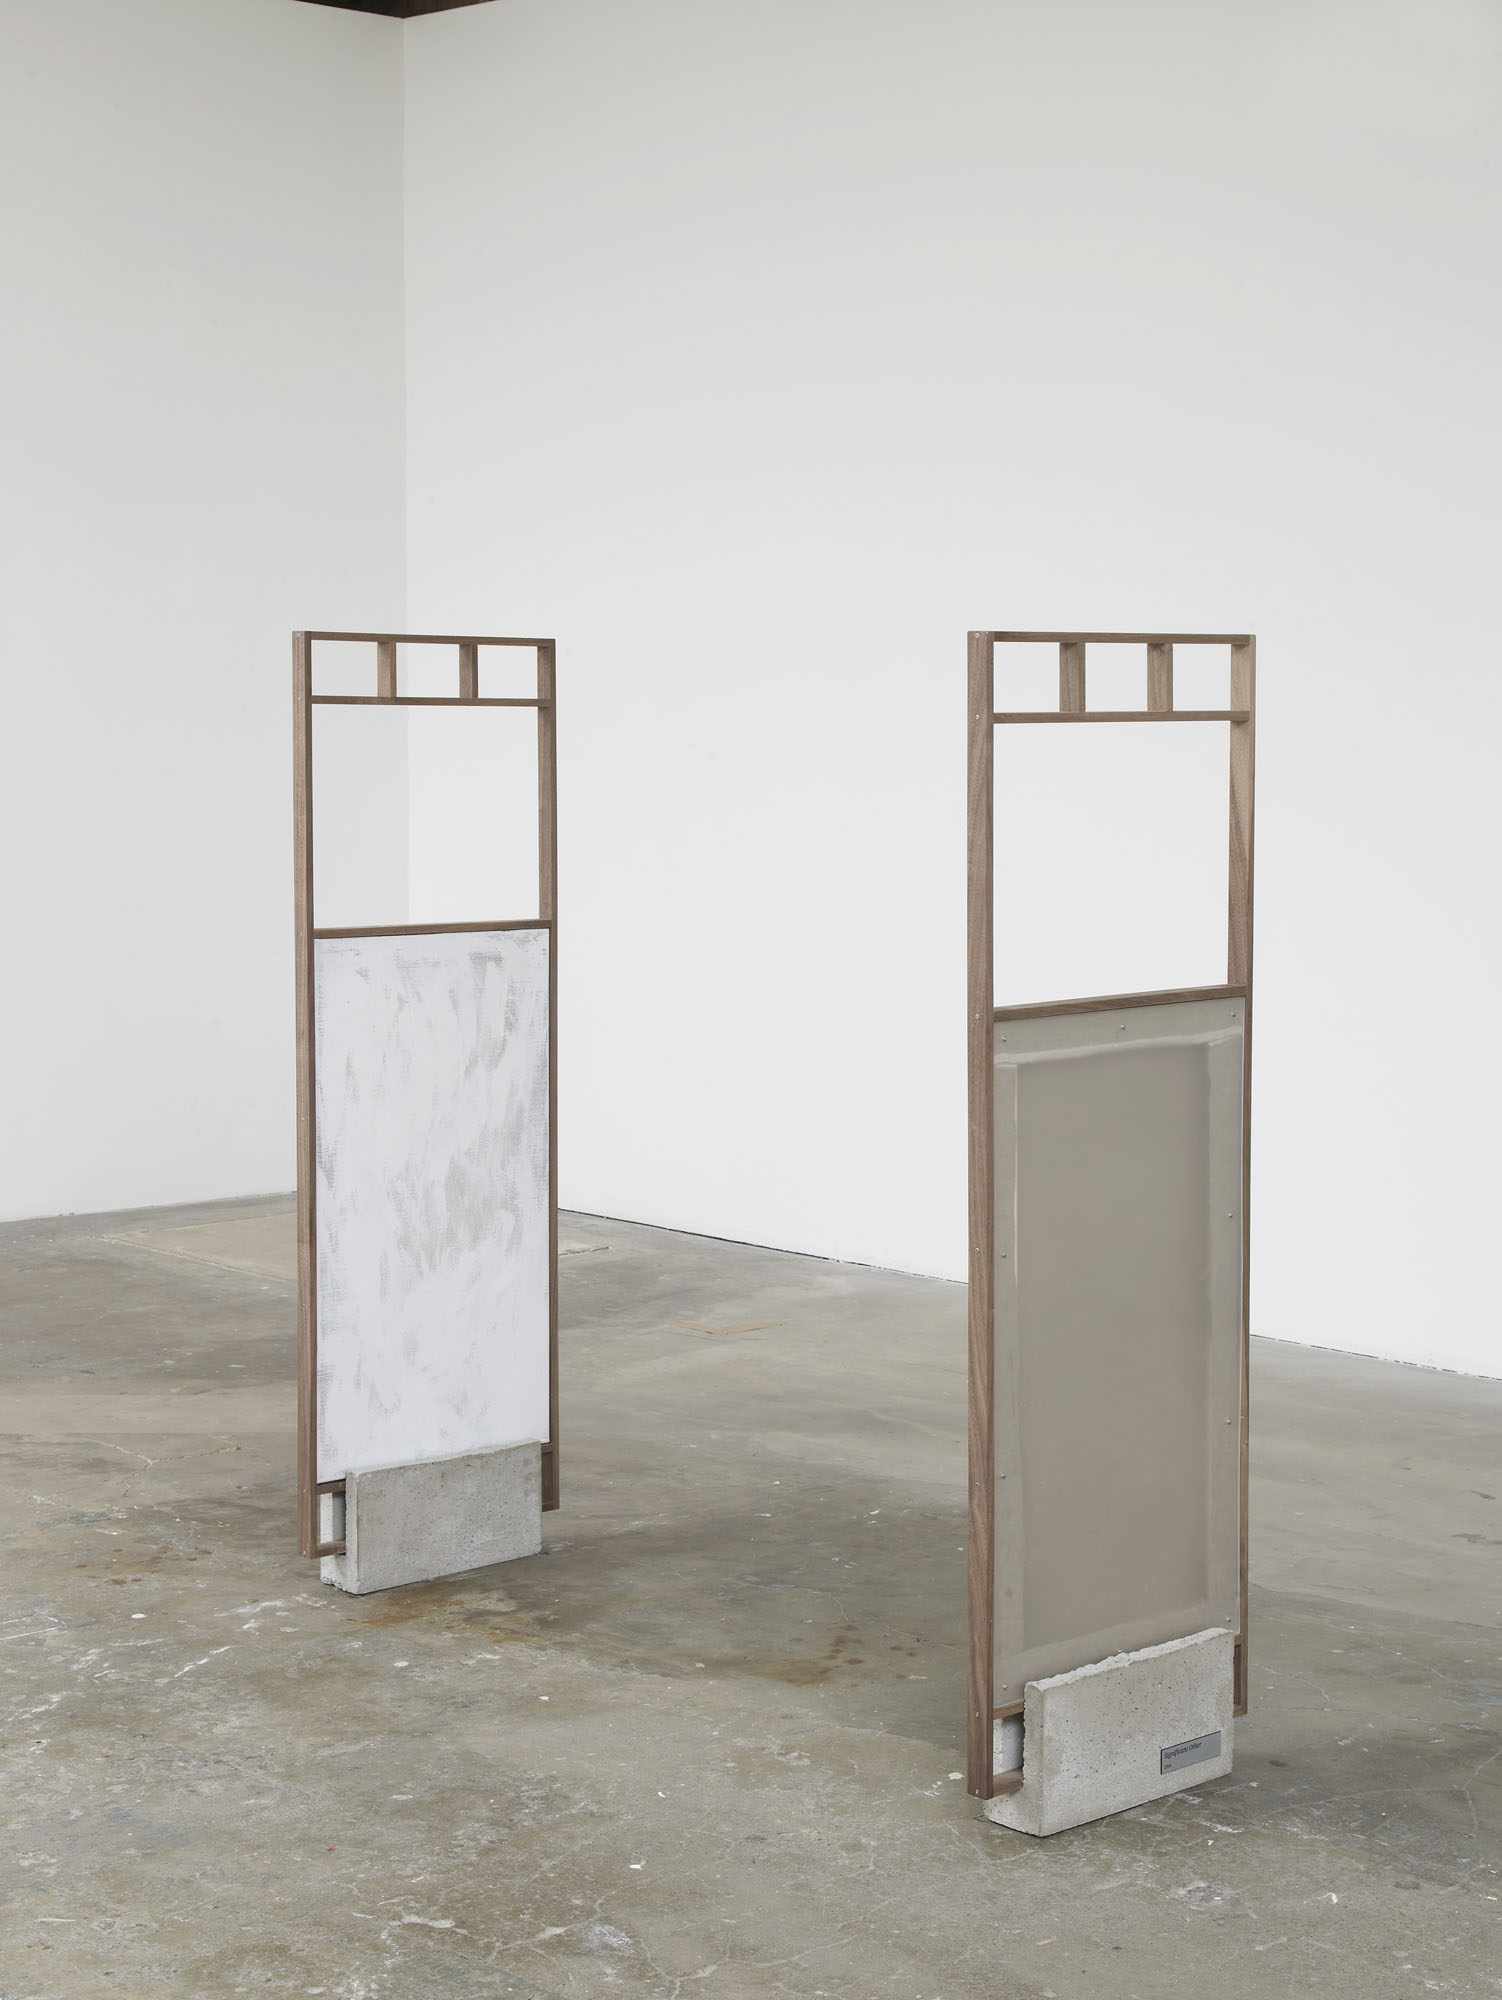 Significant Other, 2016